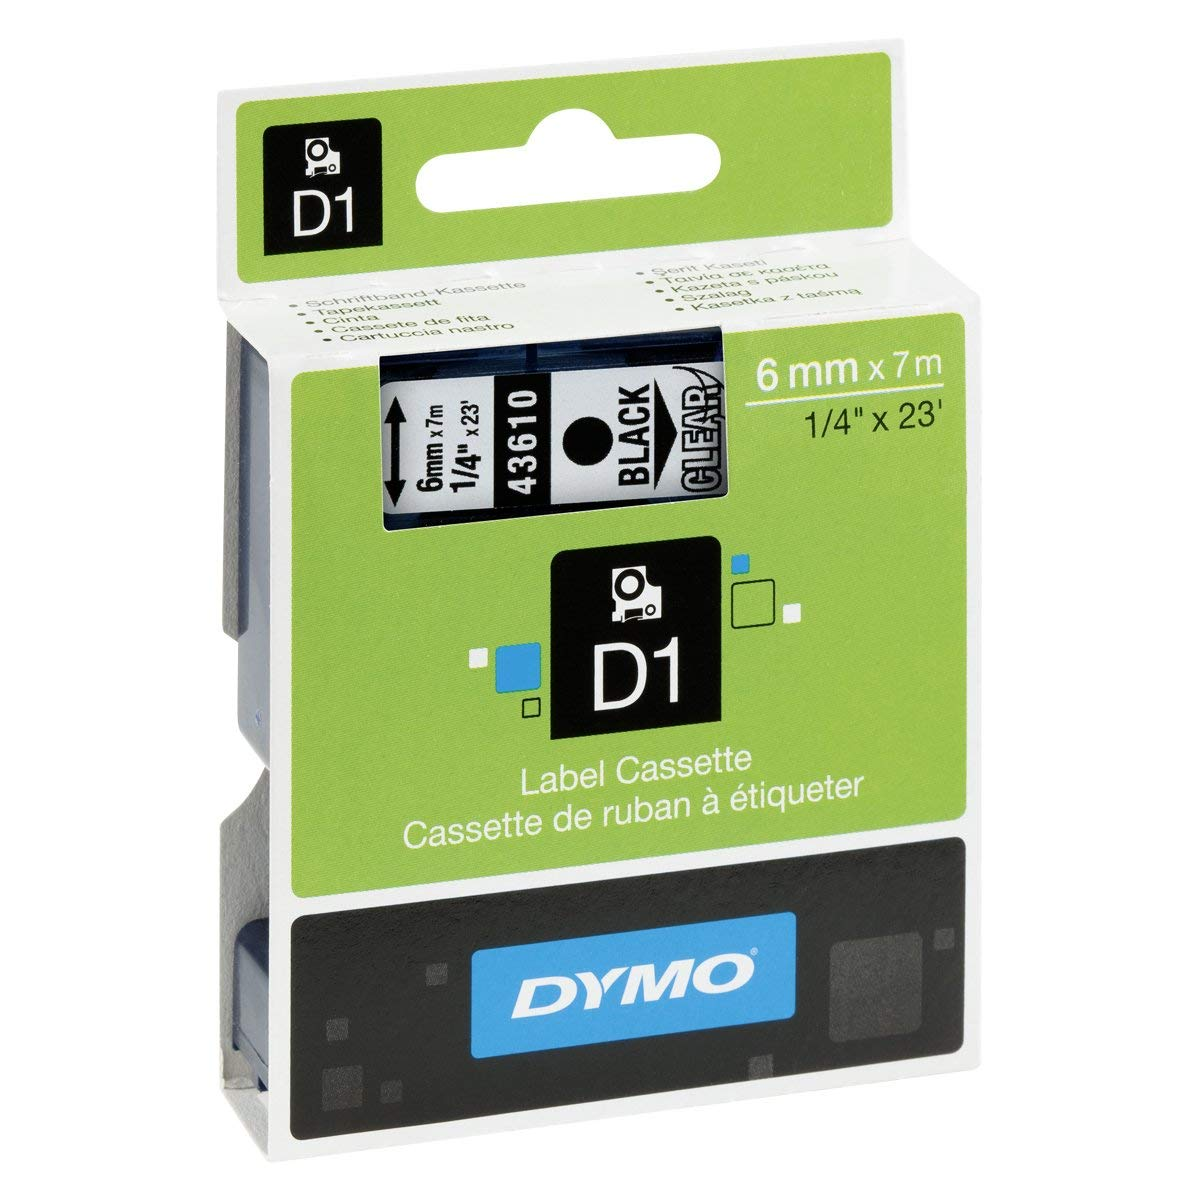 Dymo S0720770 (43610) D1 Label Tape 6mm x 7m - Black on Transparent (pc)